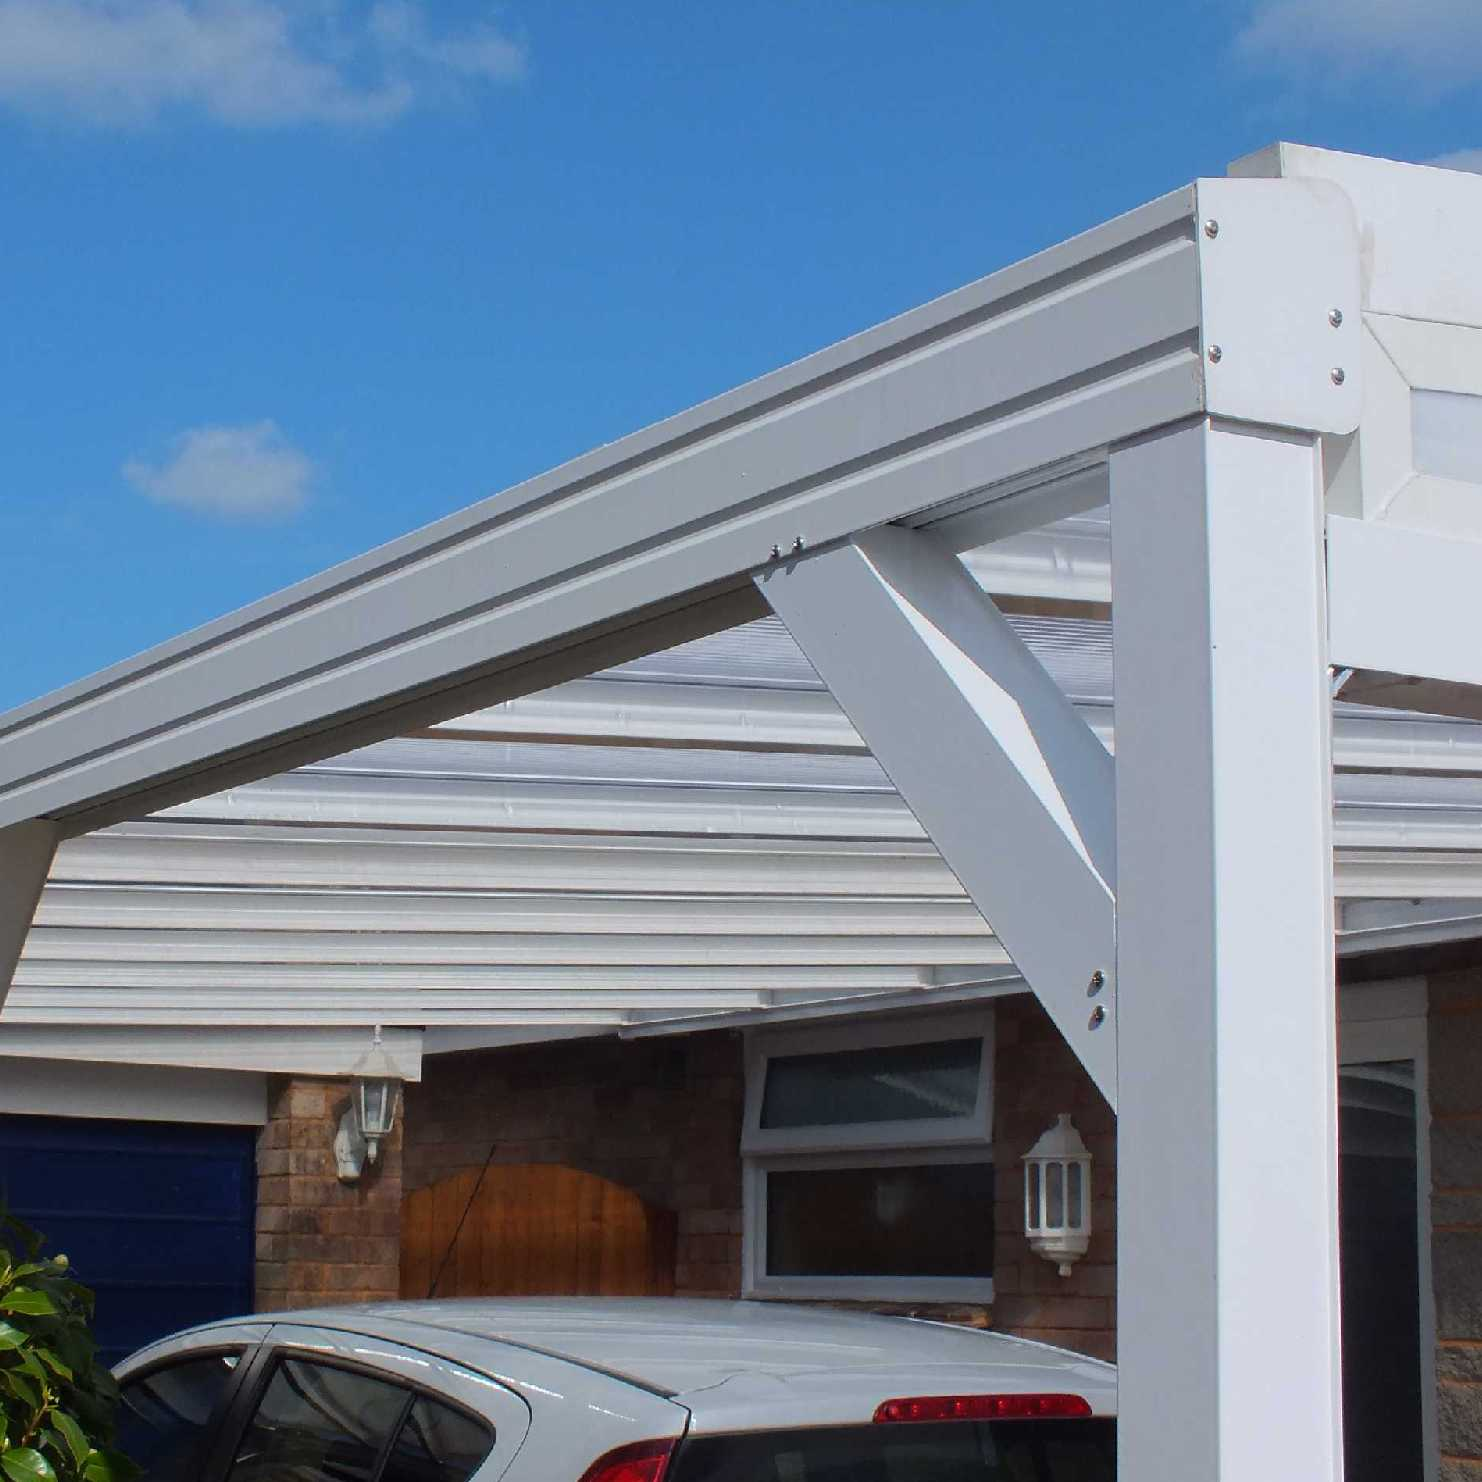 Great deals on Omega Smart Lean-To Canopy with 16mm Polycarbonate Glazing - 3.1m (W) x 3.0m (P), (2) Supporting Posts